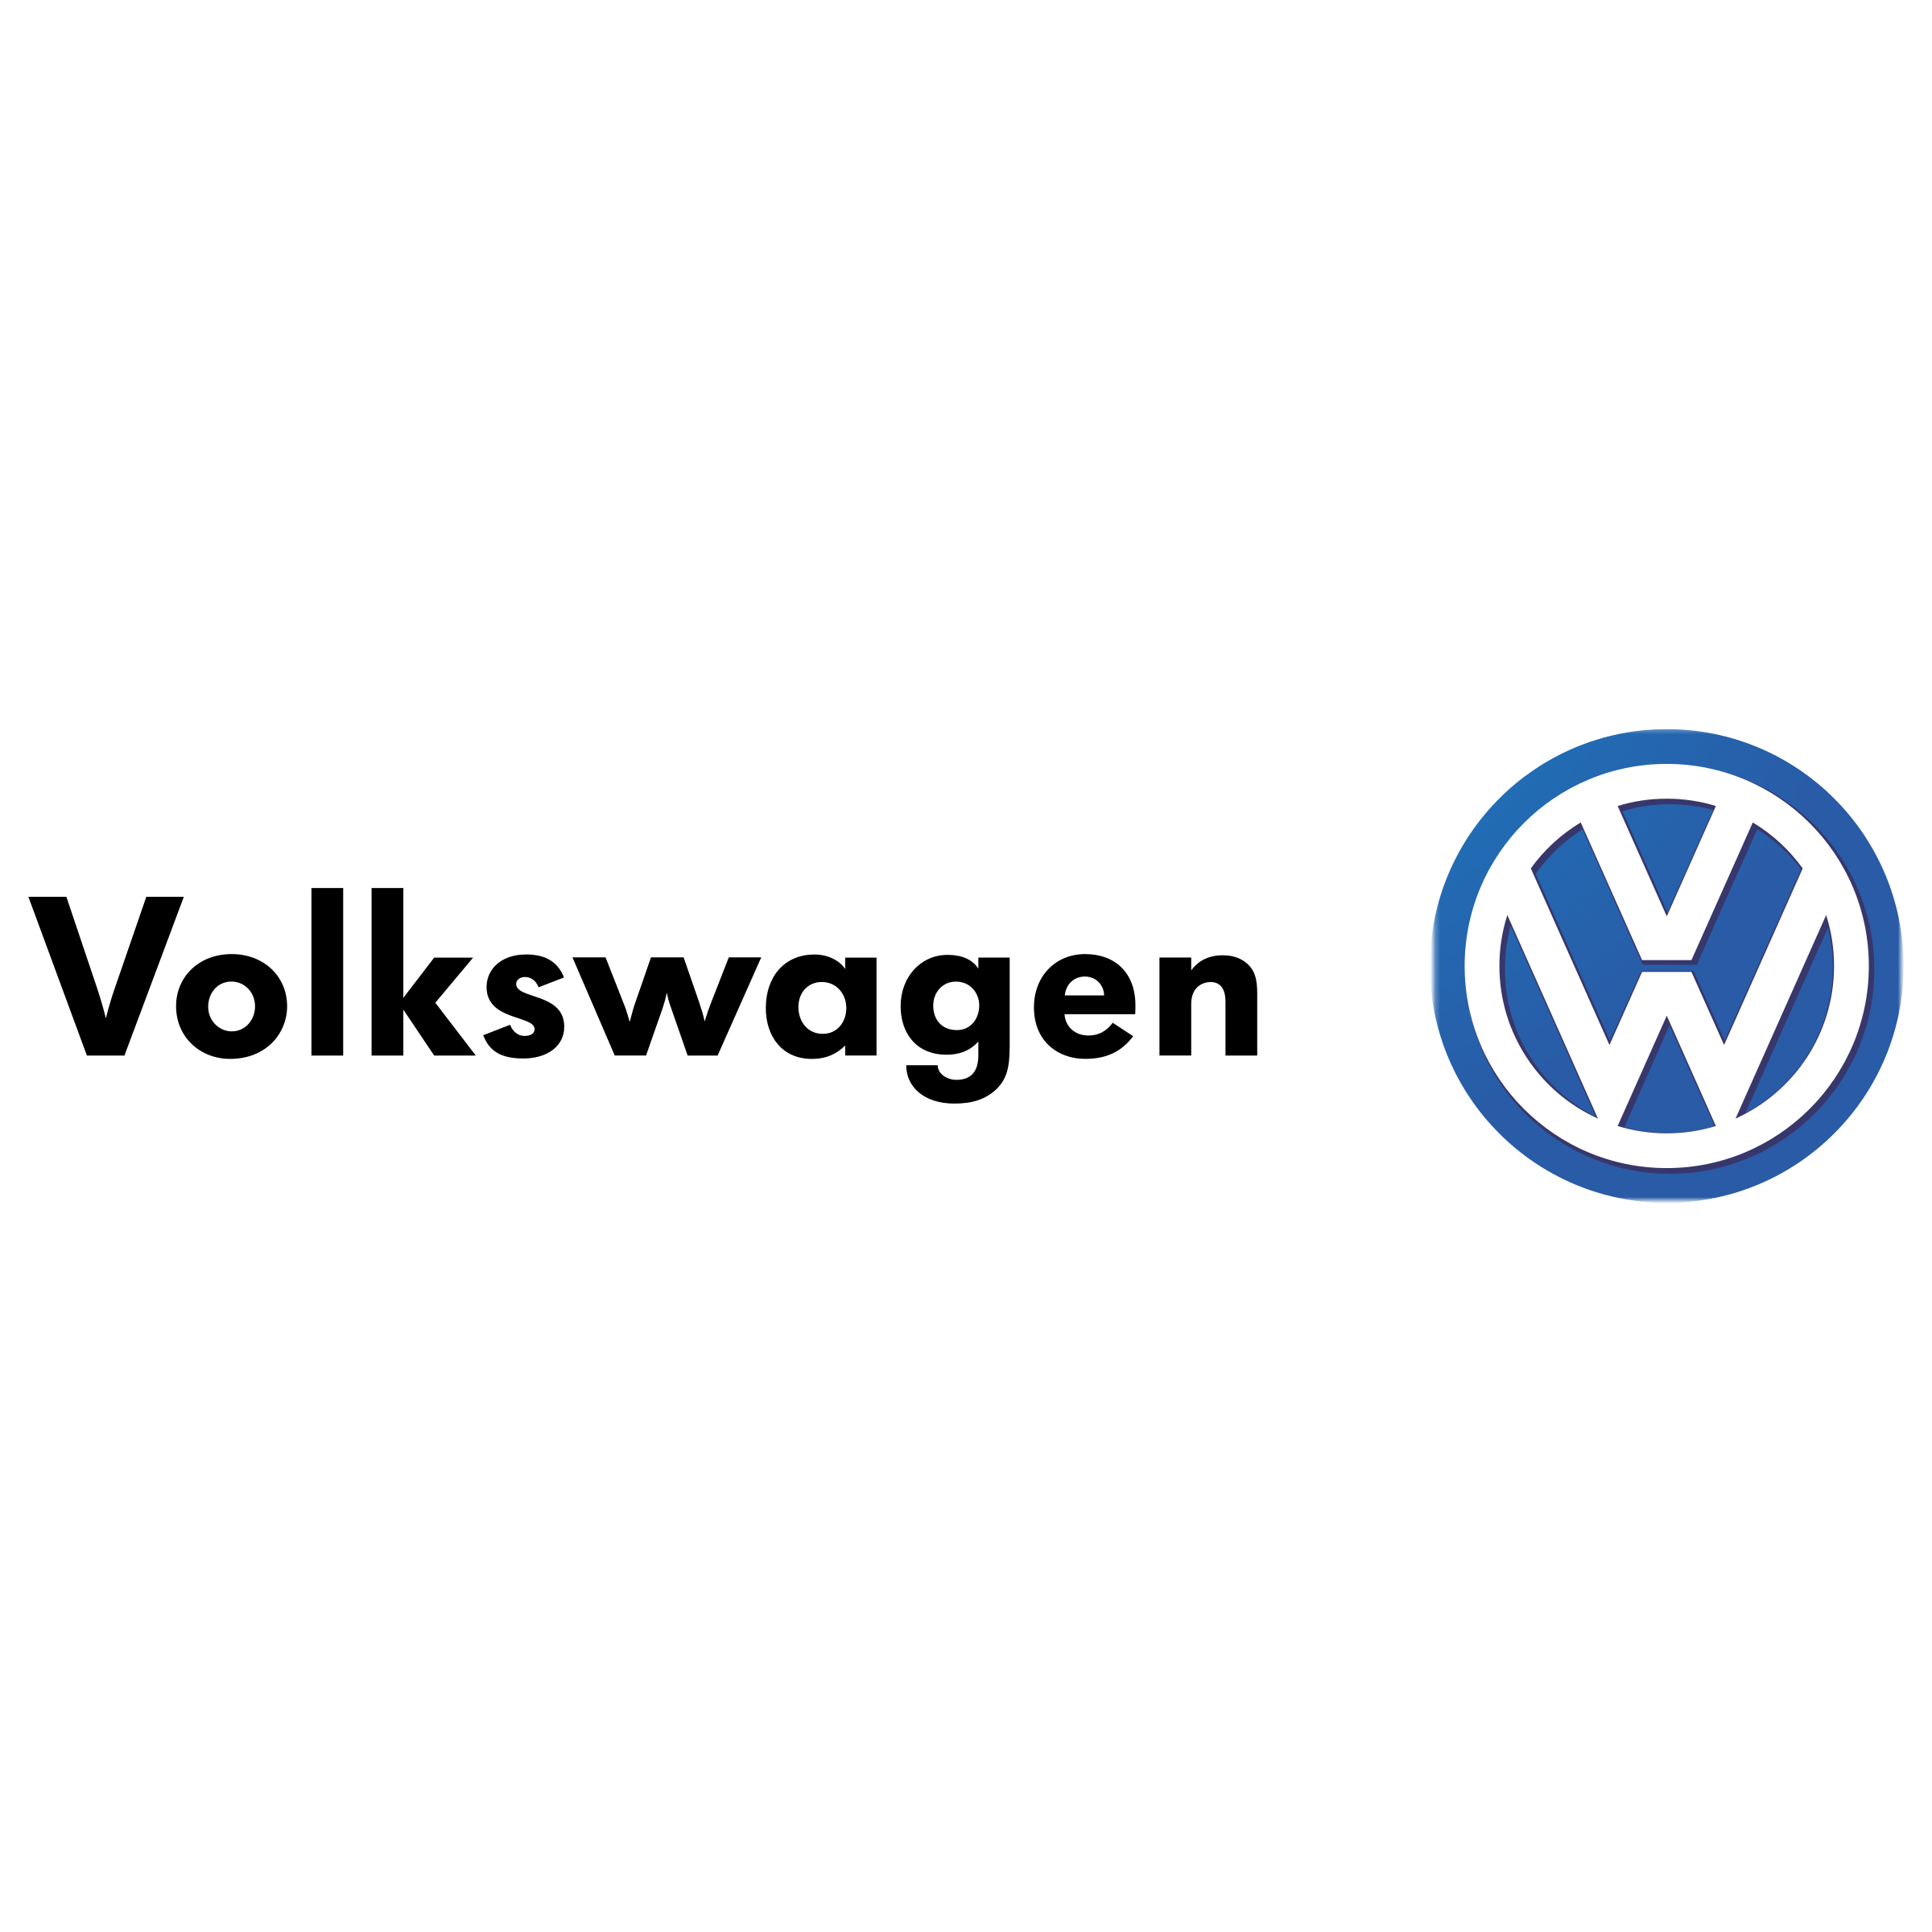 Volkswagen Logo PNG Transparent & SVG Vector.